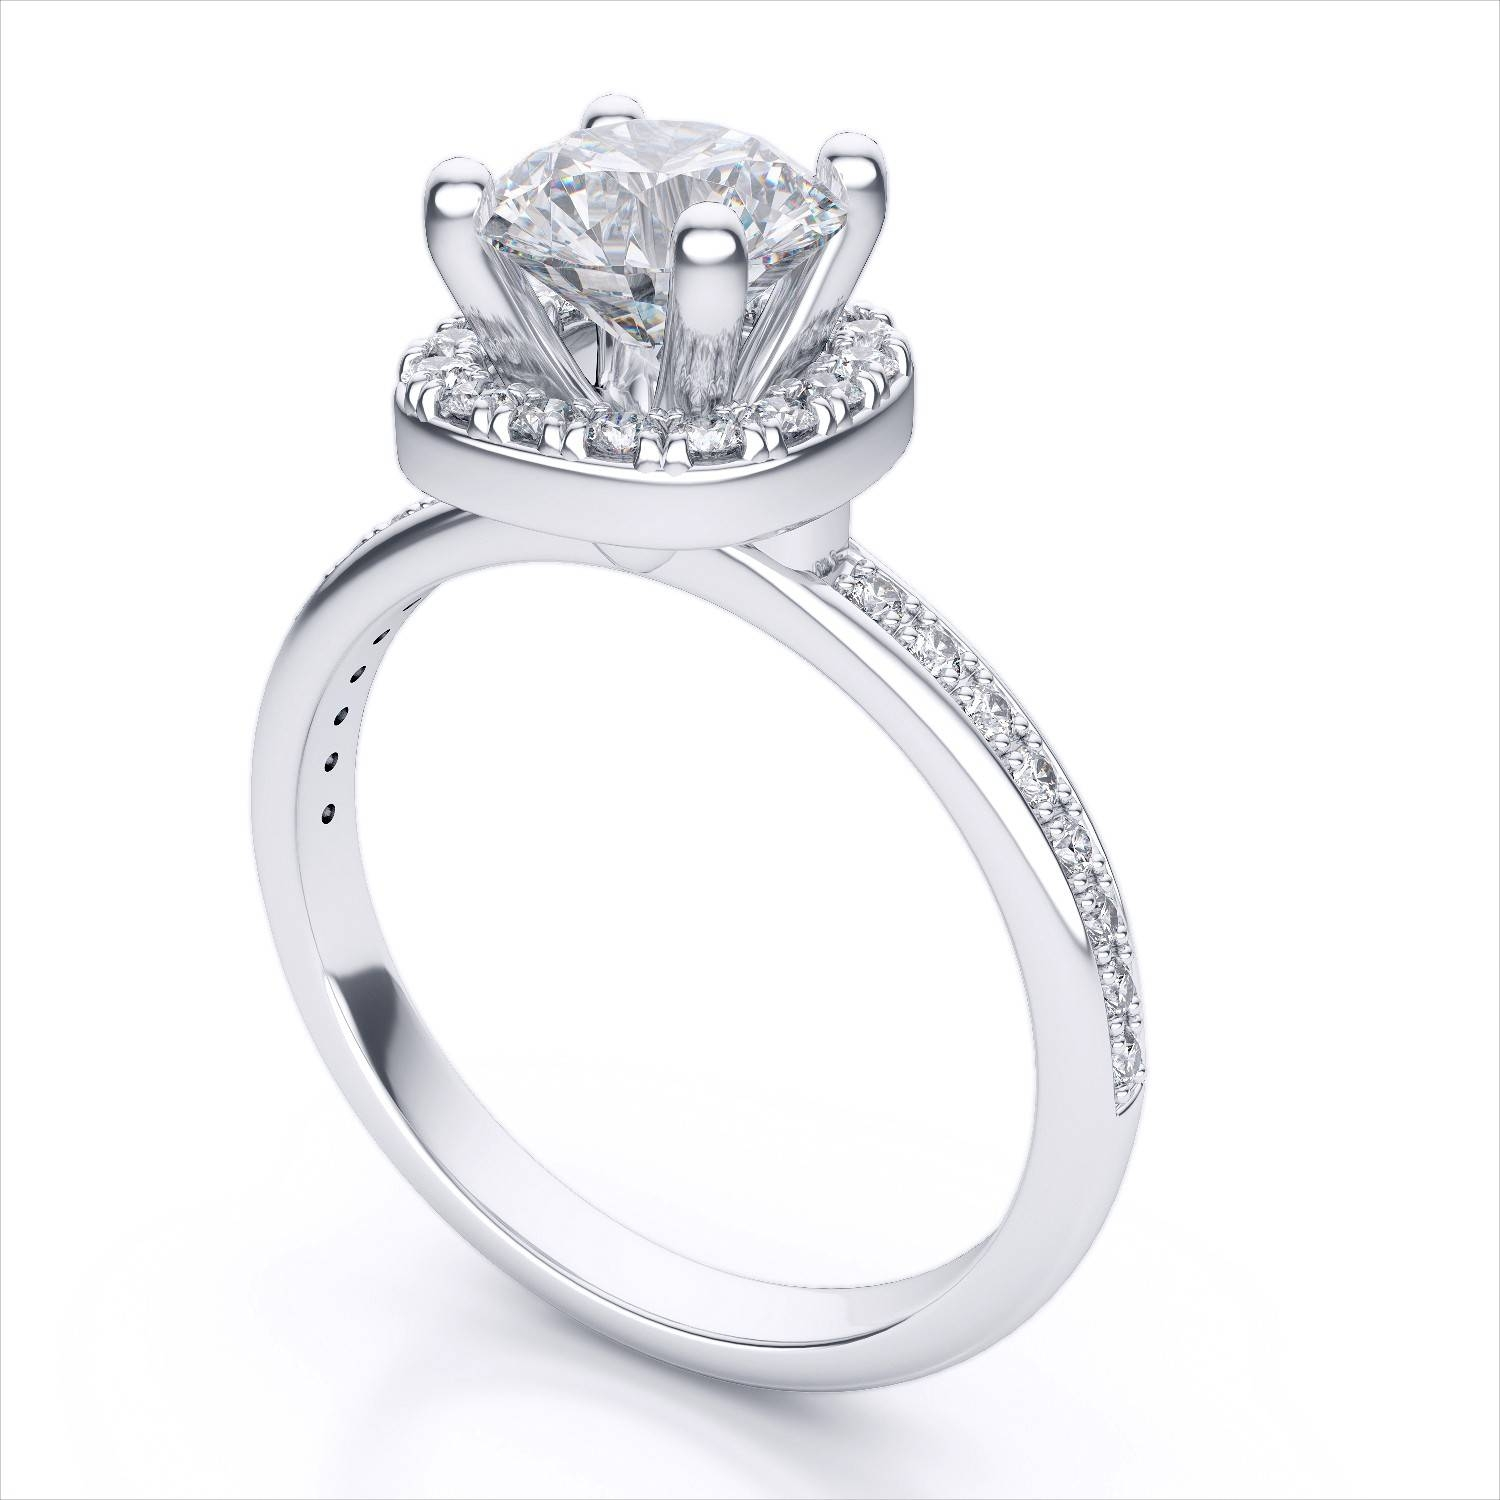 set matching settings ring wedding jewellery with cathedral cz setting carat zirconia bridal cubic engagement pin